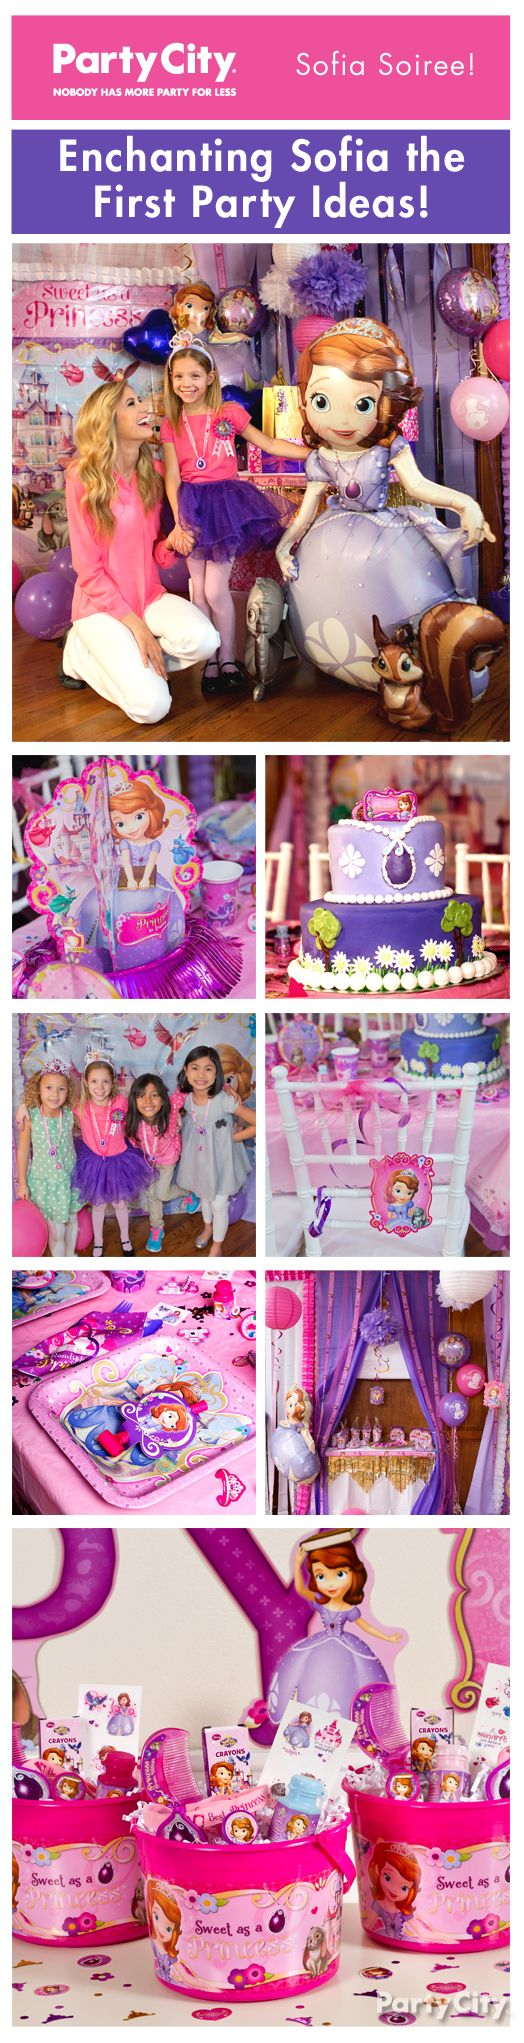 Gather the royal court for an enchanted birthday party! Make your daughter feel like she's inside the fairytale land of Enchancia with Sofia the First party ideas fit for a princess!